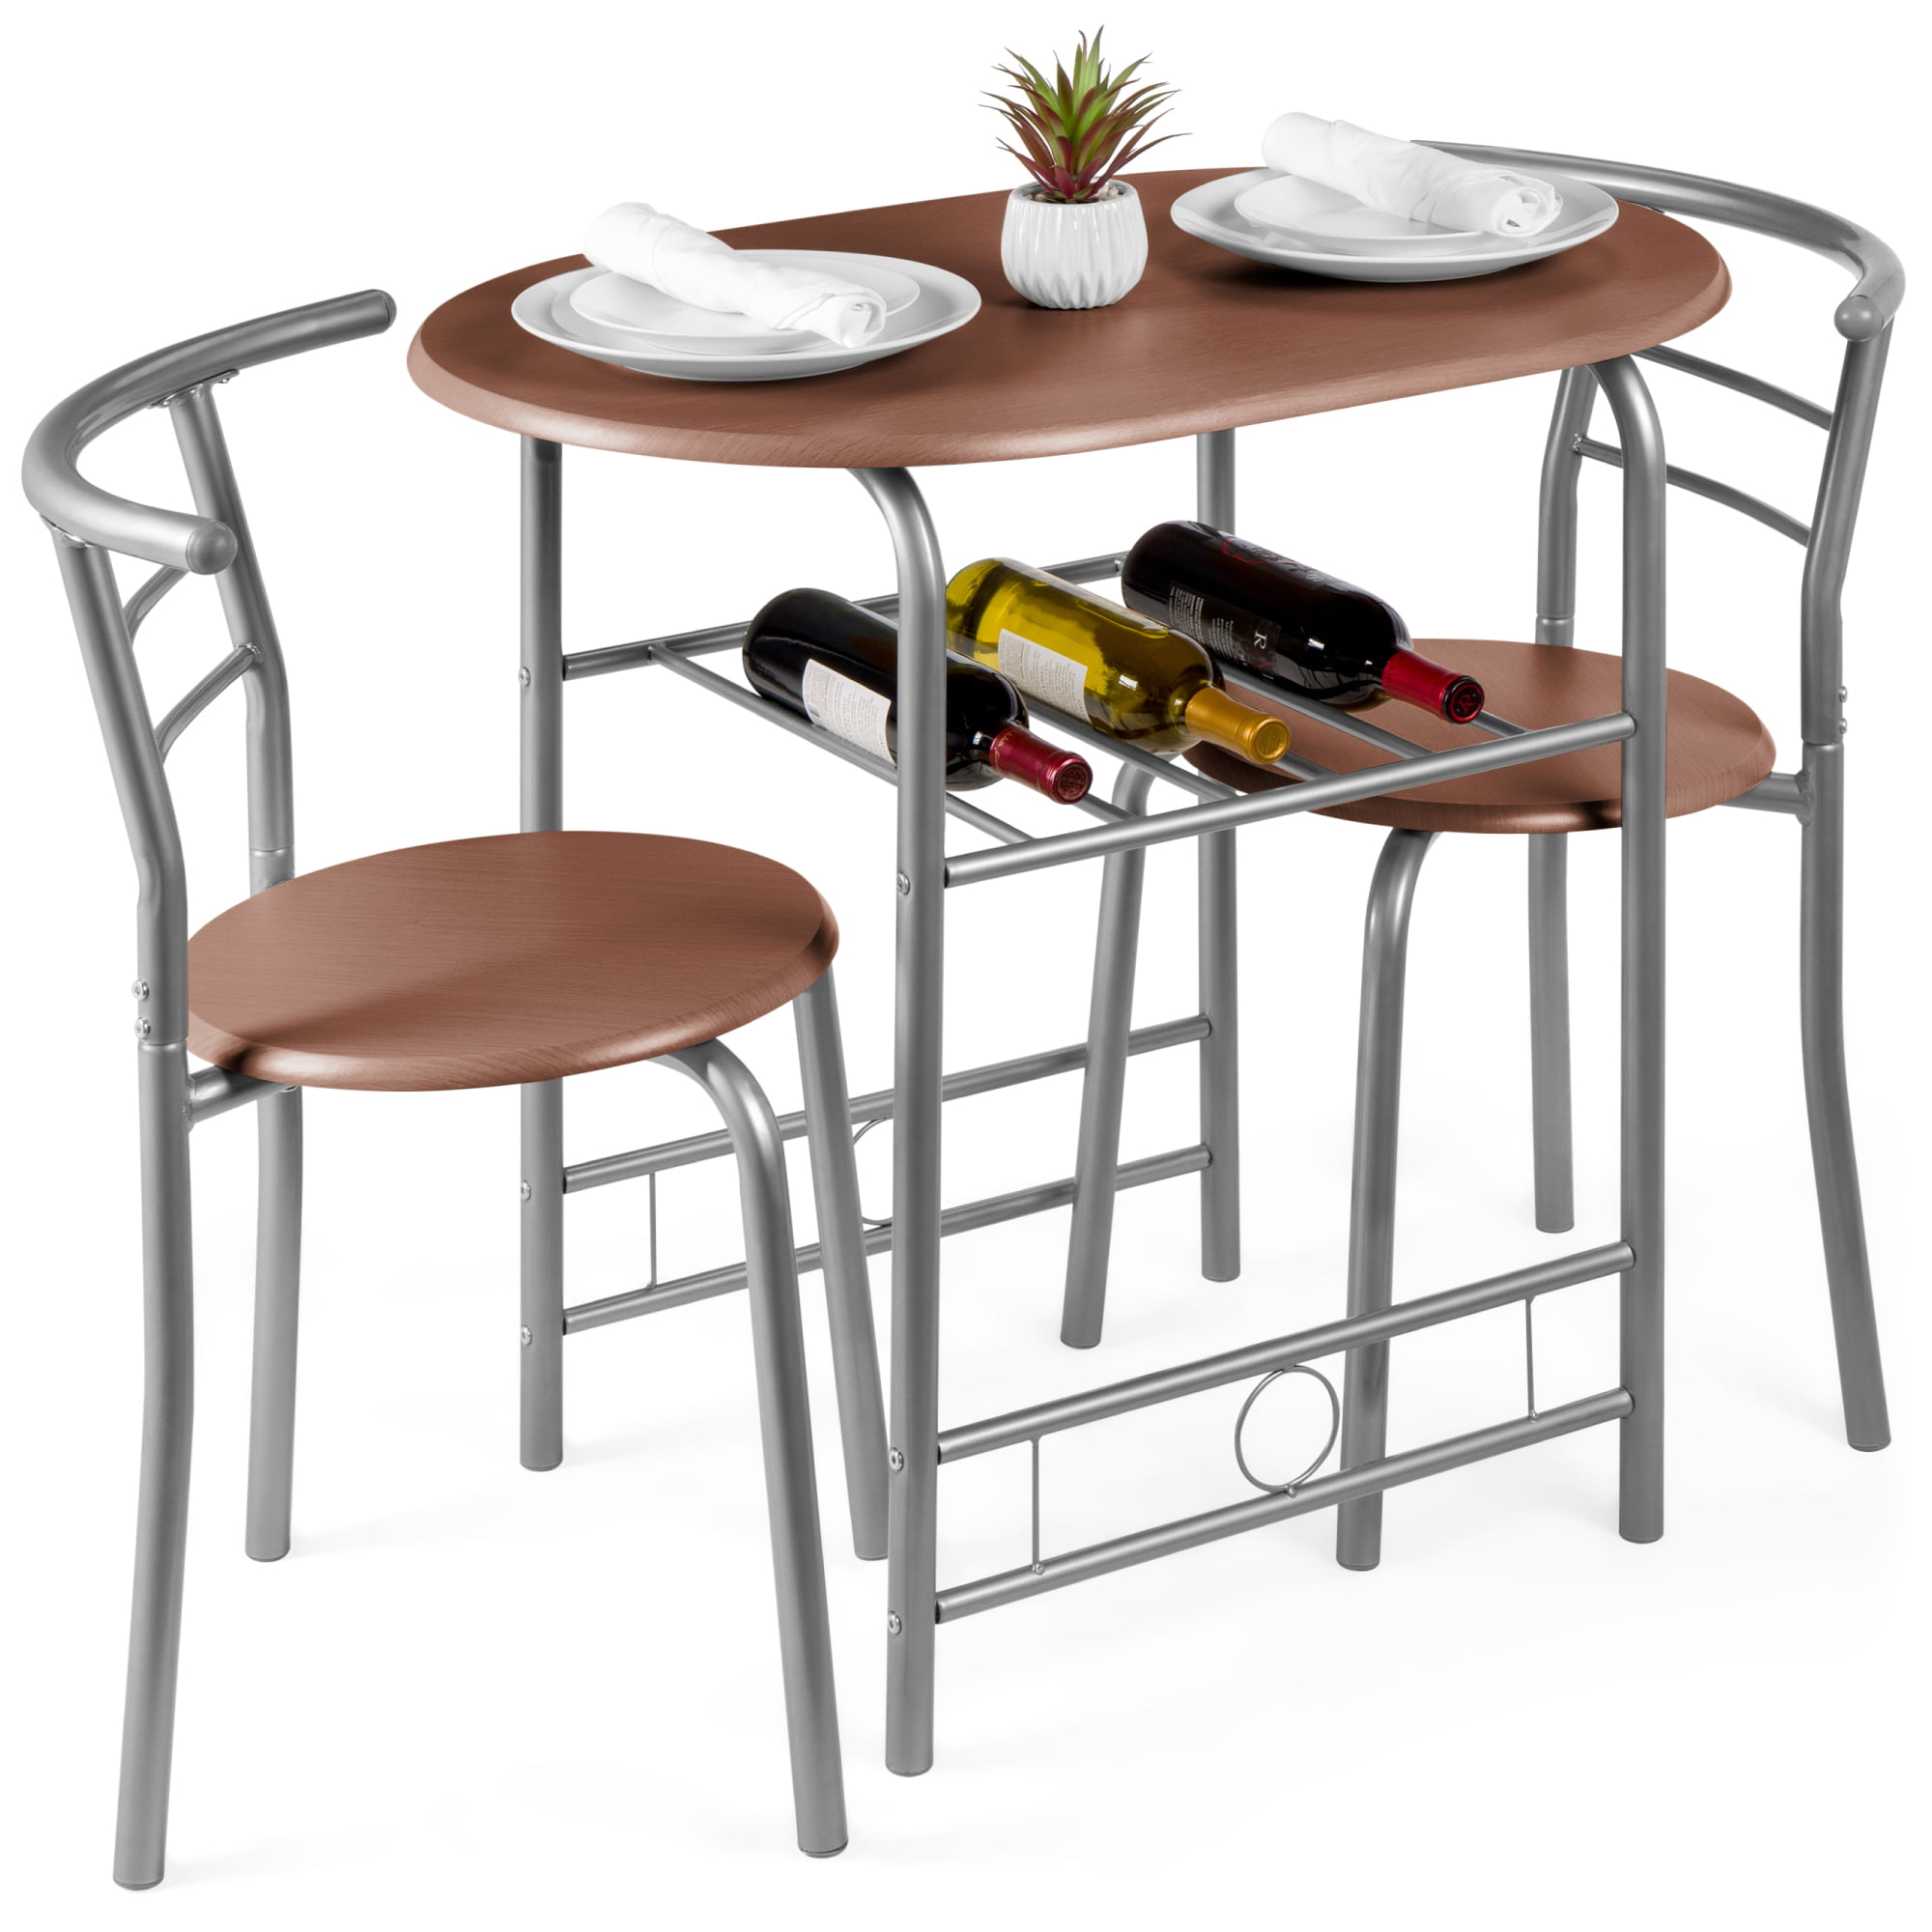 Best Choice Products 3 Piece Wood Dining Room Round Table Chairs Set W Steel Frame Built In Wine Rack Espresso Walmart Com Walmart Com